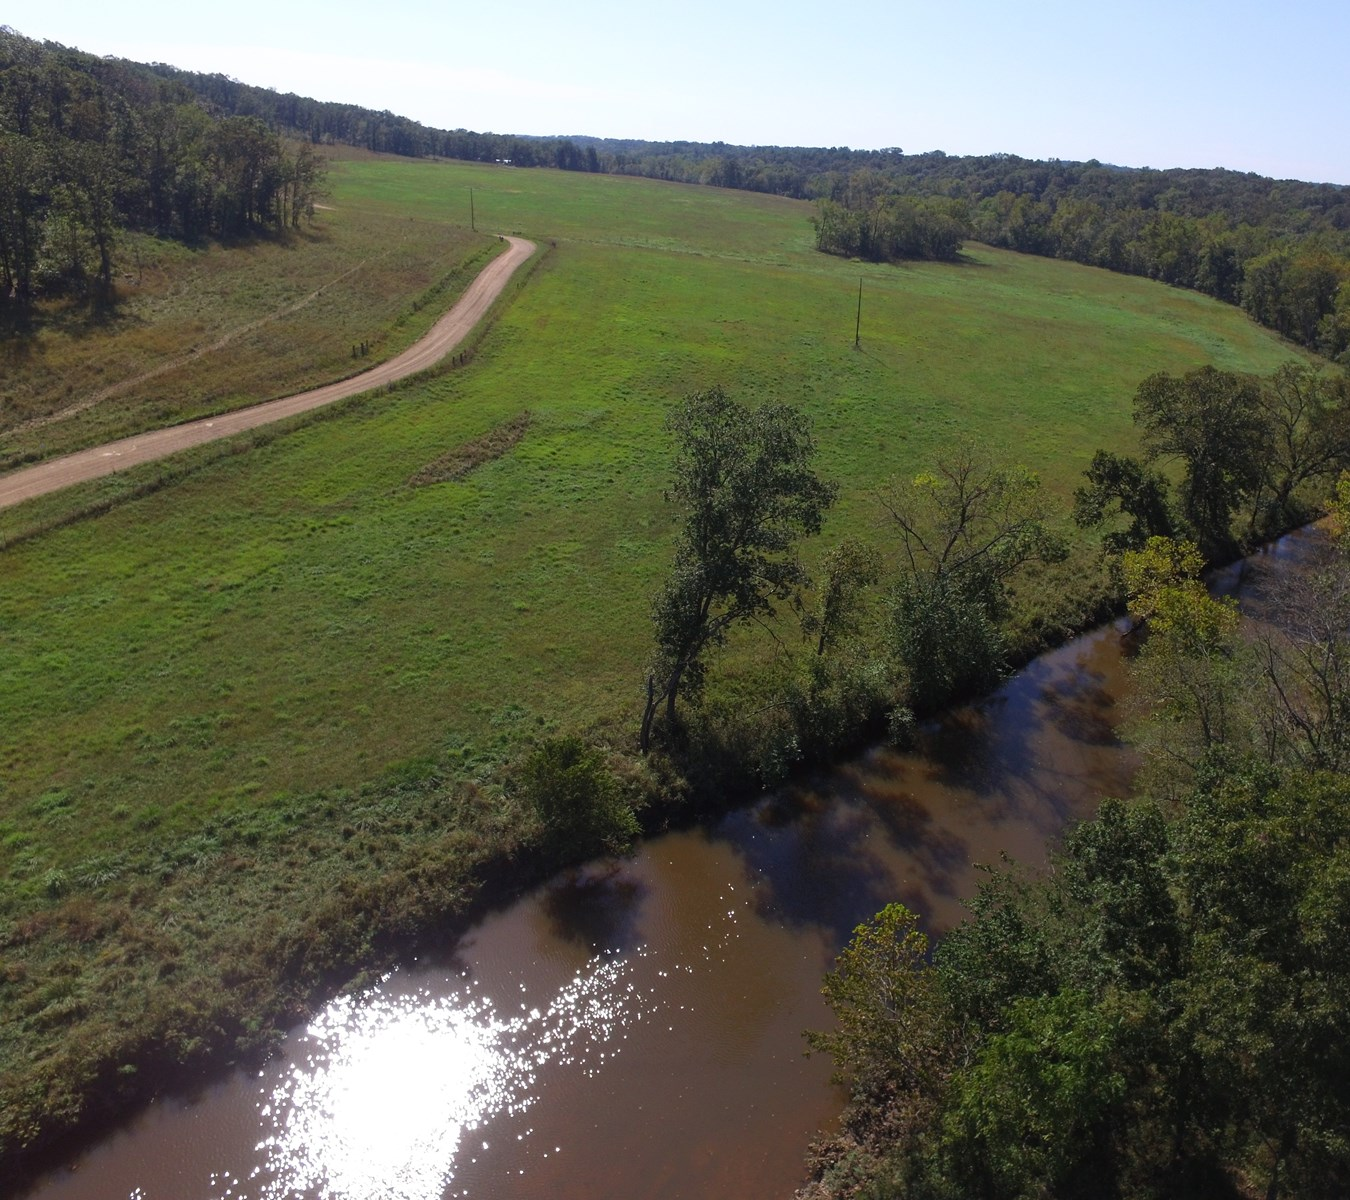 Hunting Property Benton County Mo 1152 +/- ac Land for sale